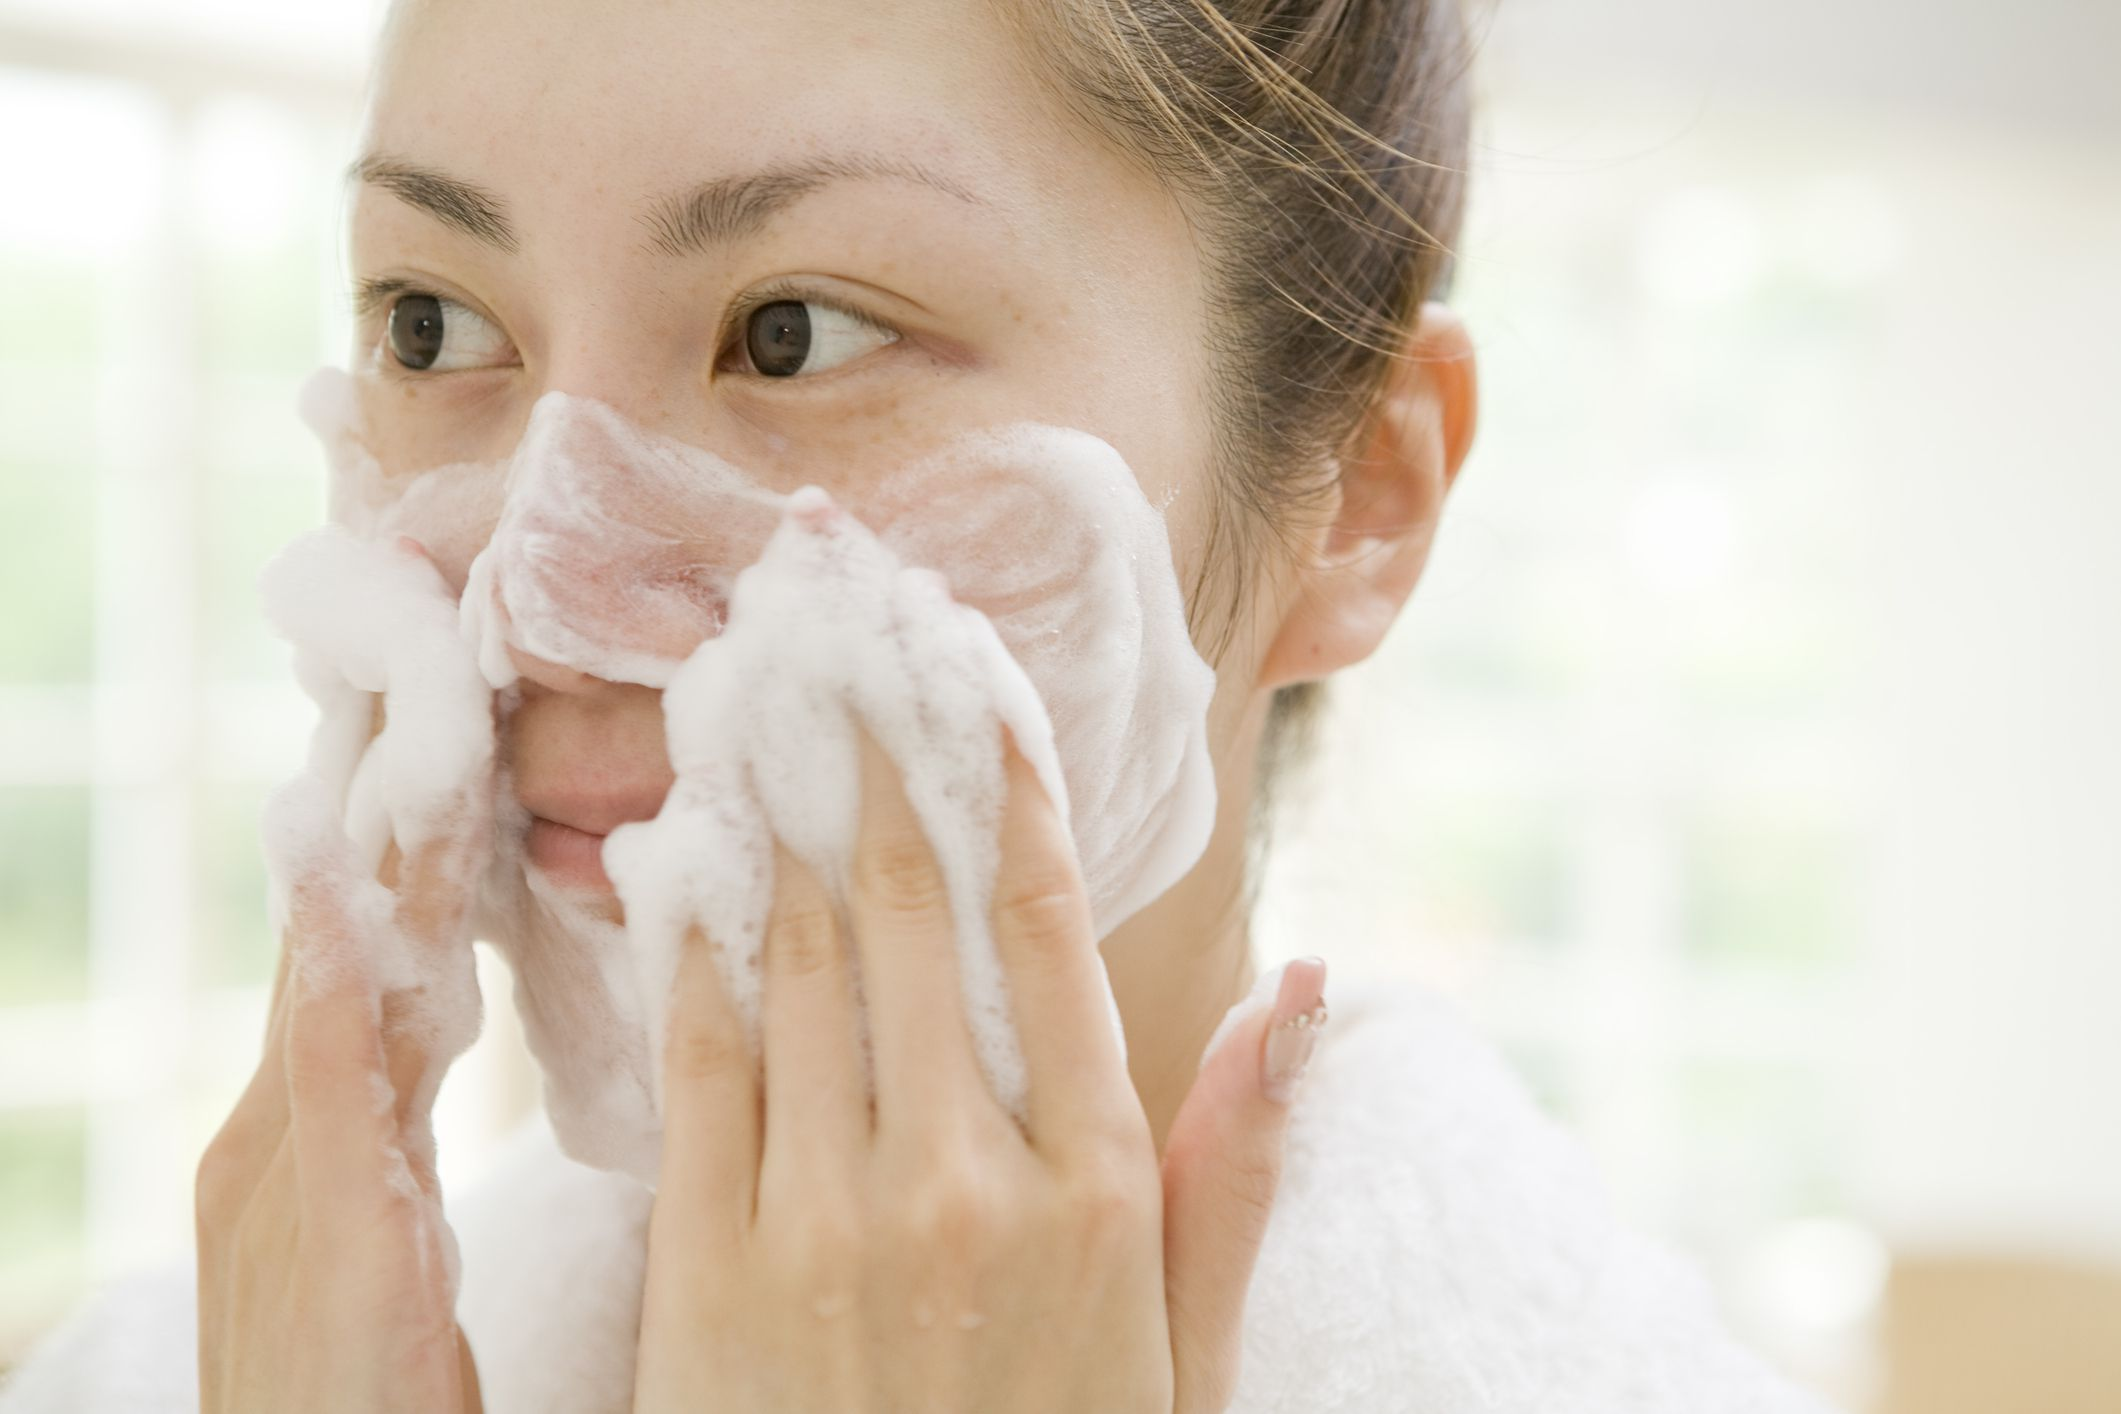 How Much Should Face Wash Cost?